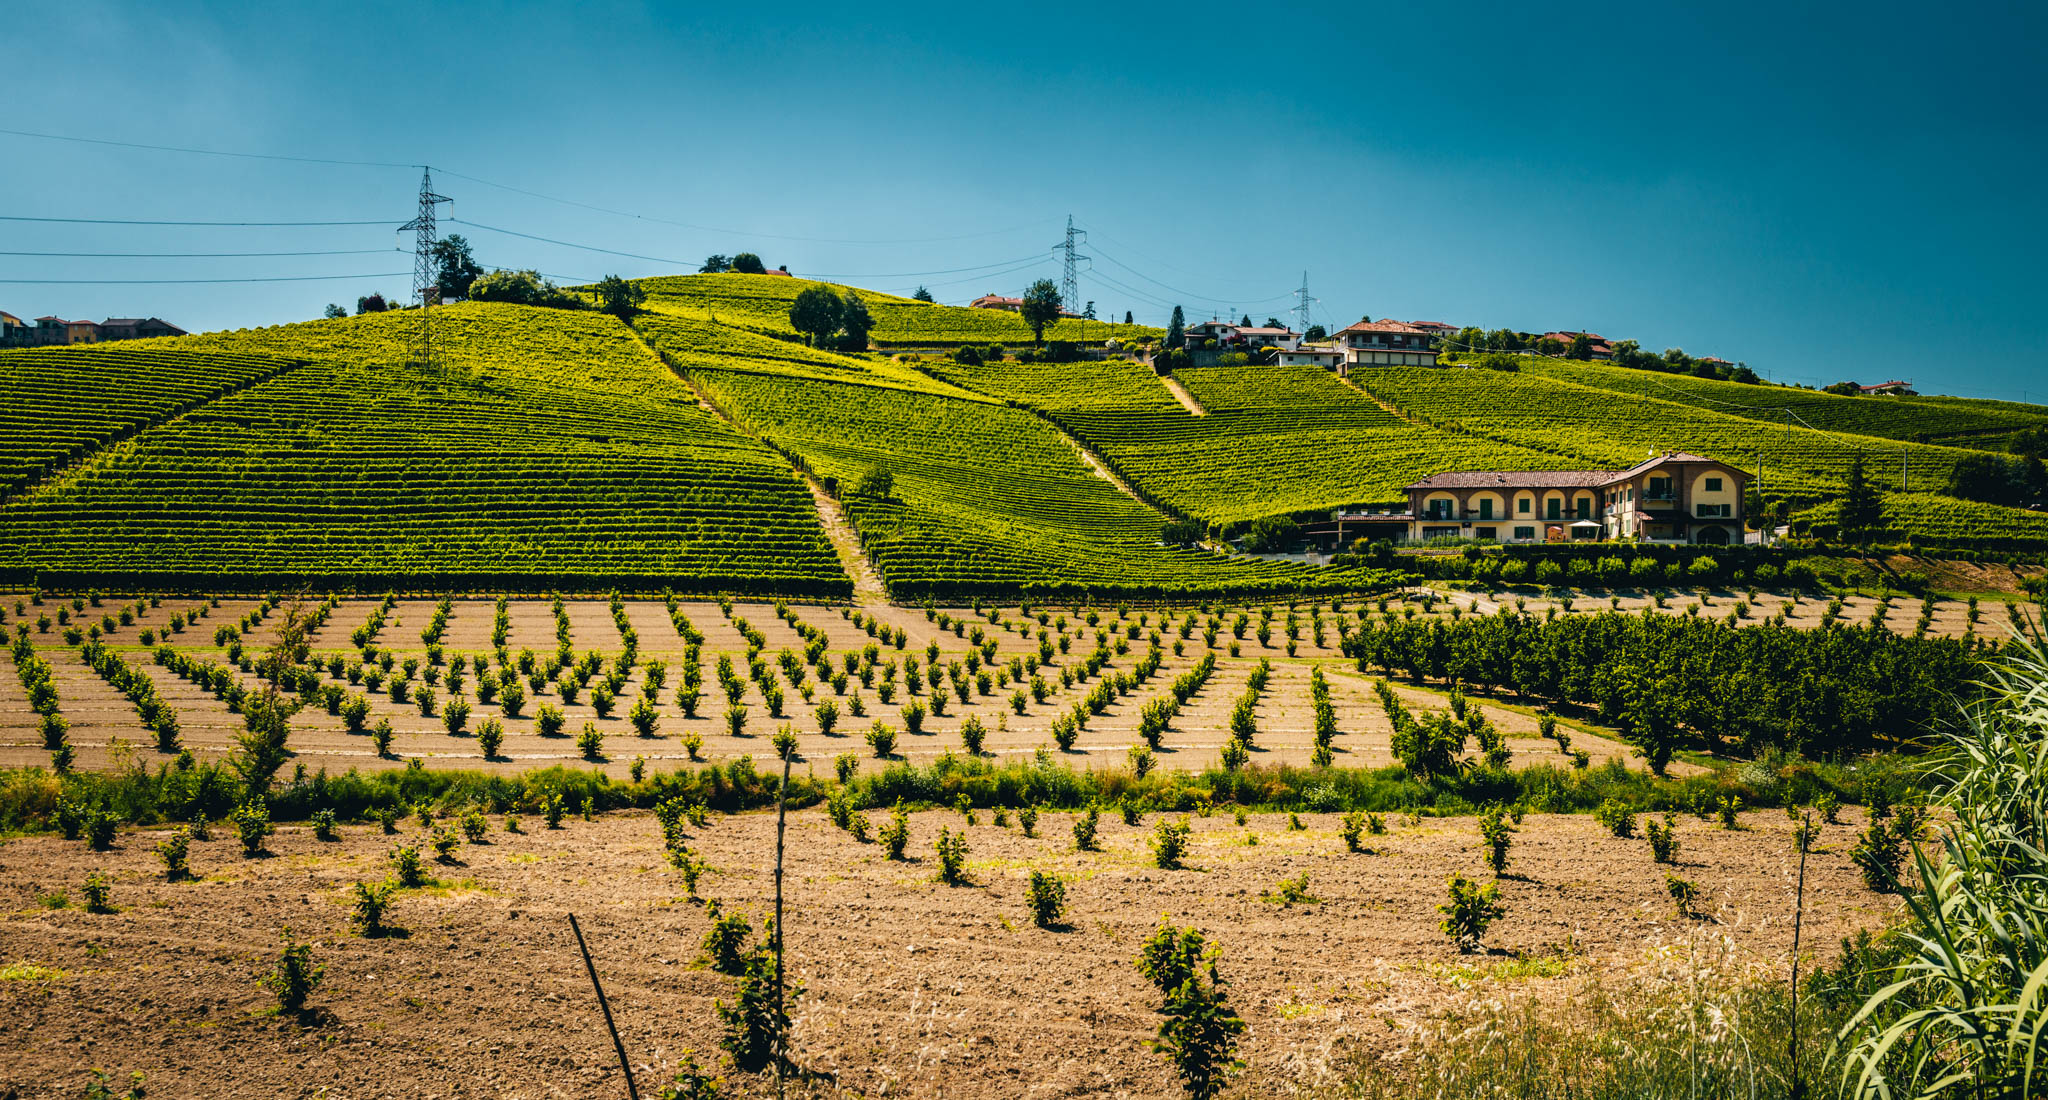 Italy : Piedmont : Ovello vineyard in Barbaresco with young hazelnut trees in the foreground